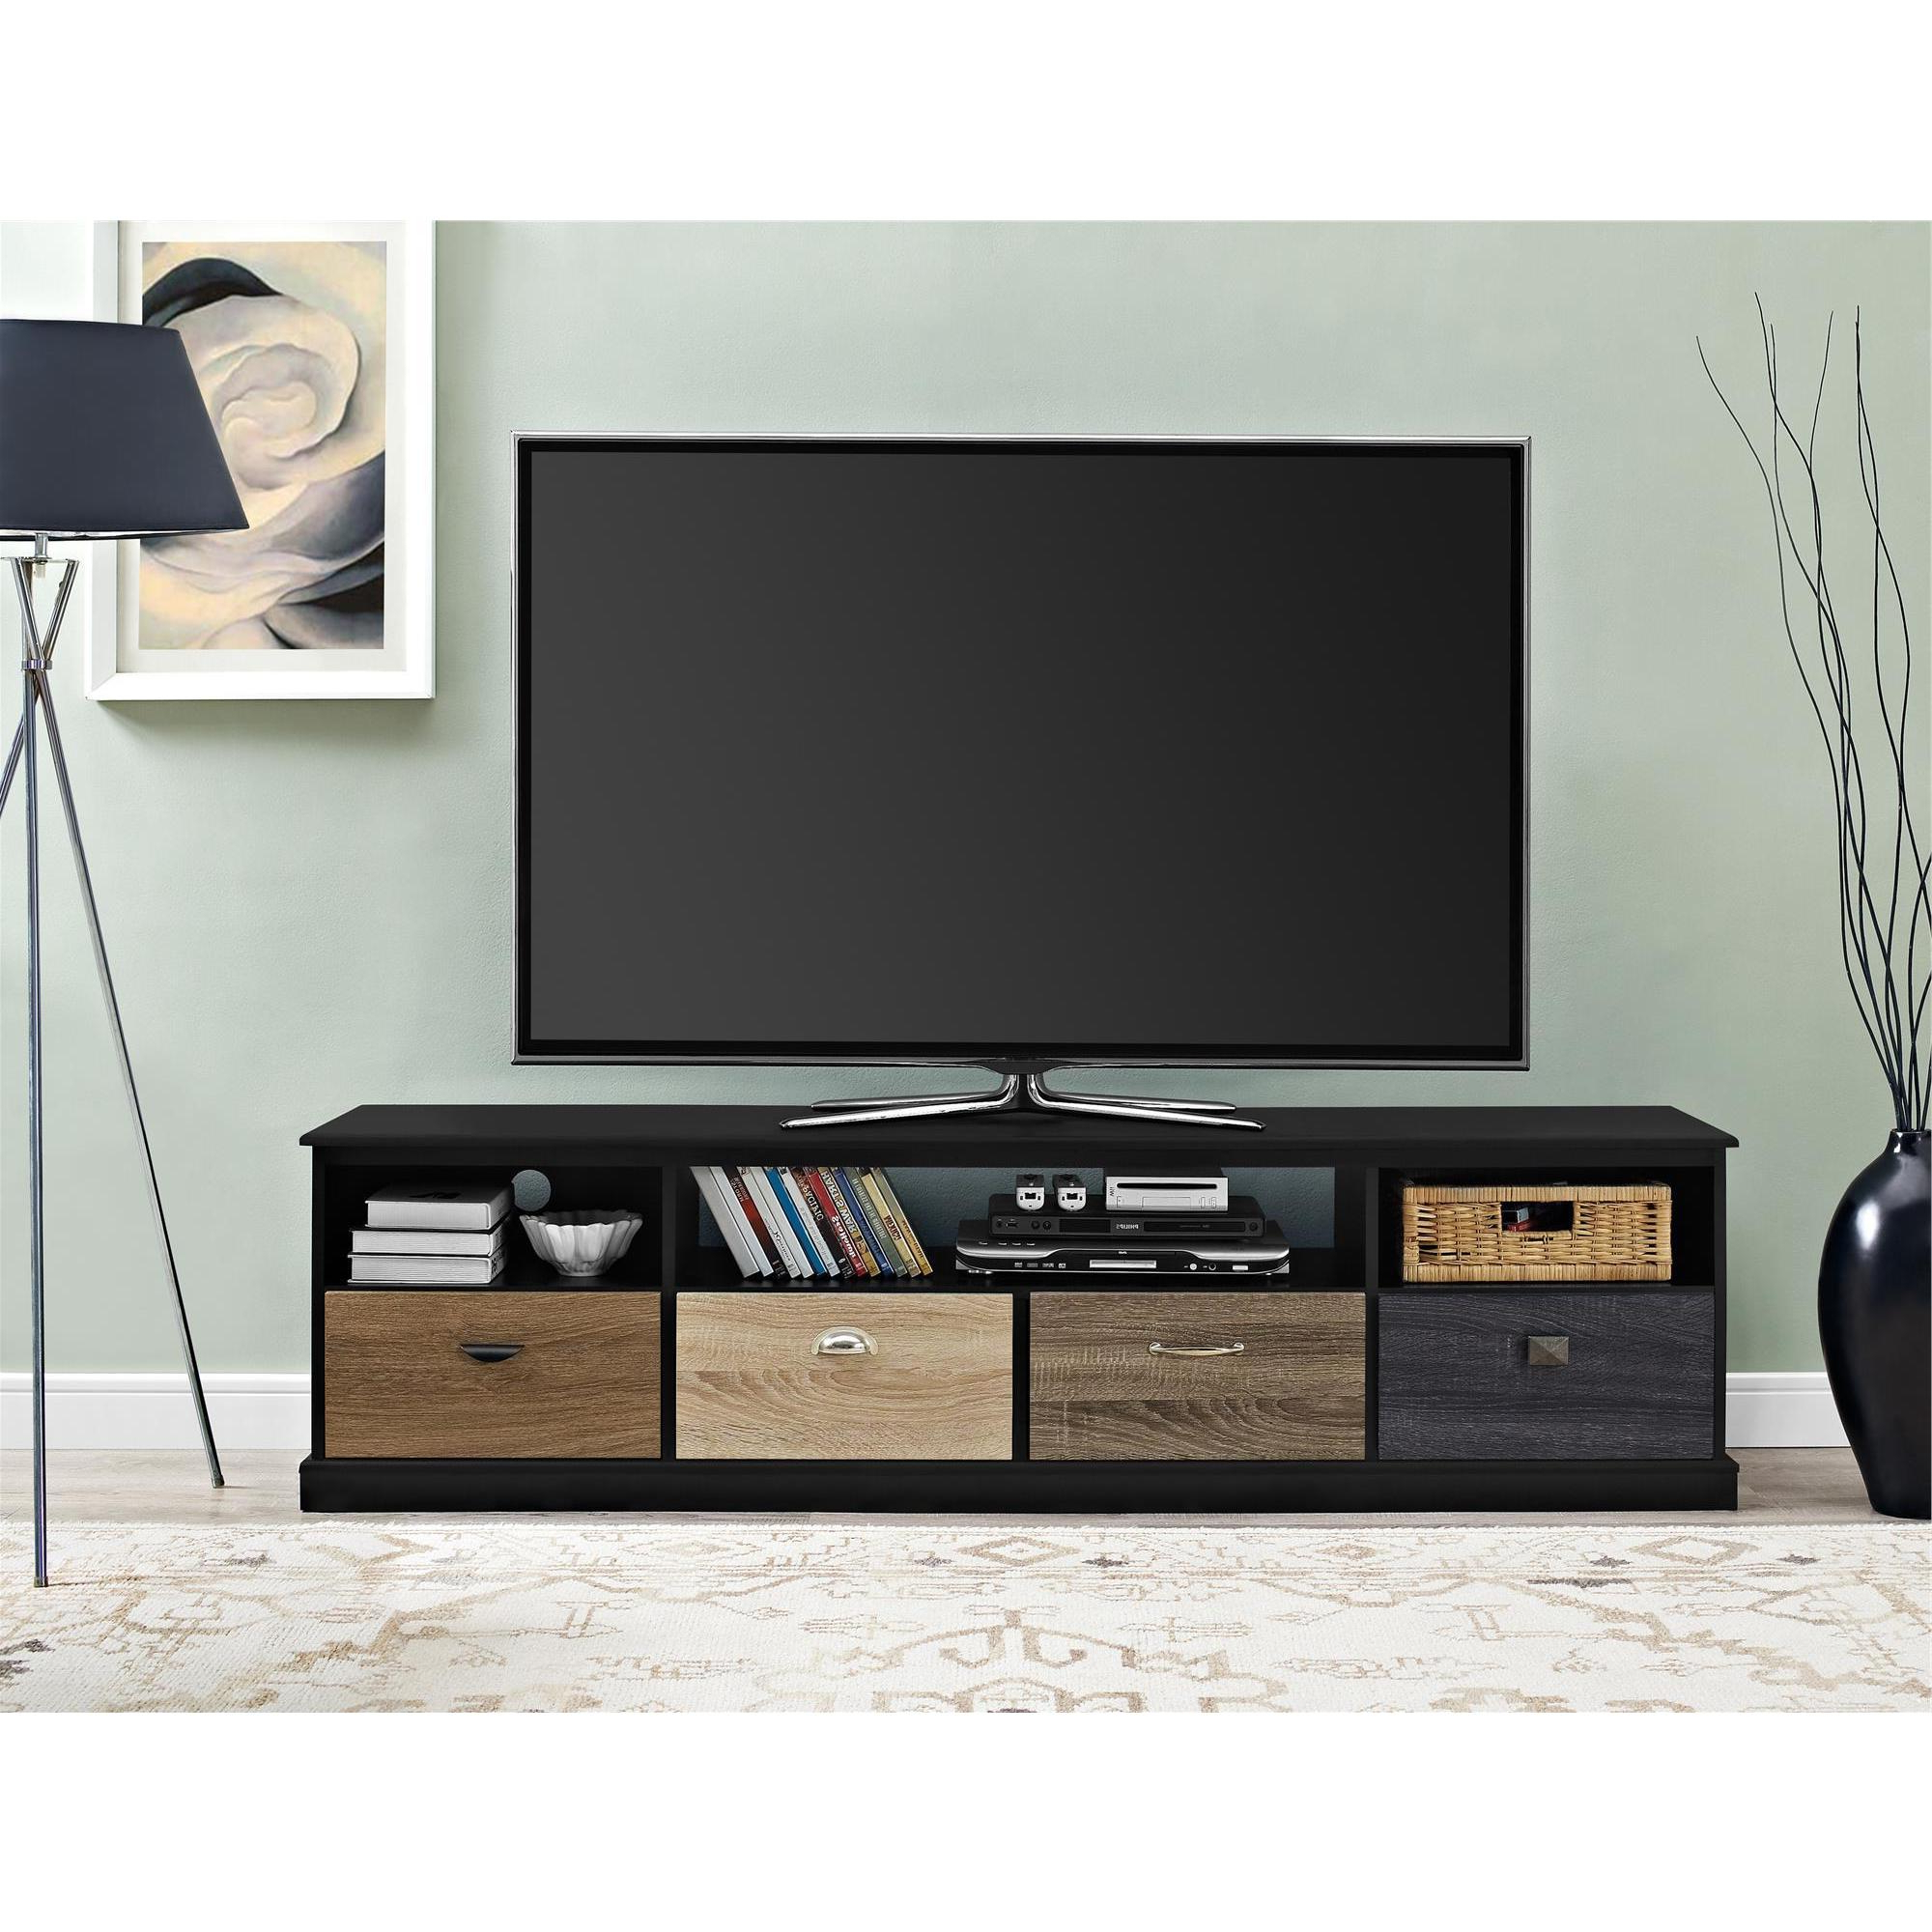 Avenue Greene Mercer 65 Inch Black Tv Console With Multicolored Drawer Fronts With Kilian Grey 74 Inch Tv Stands (View 2 of 20)